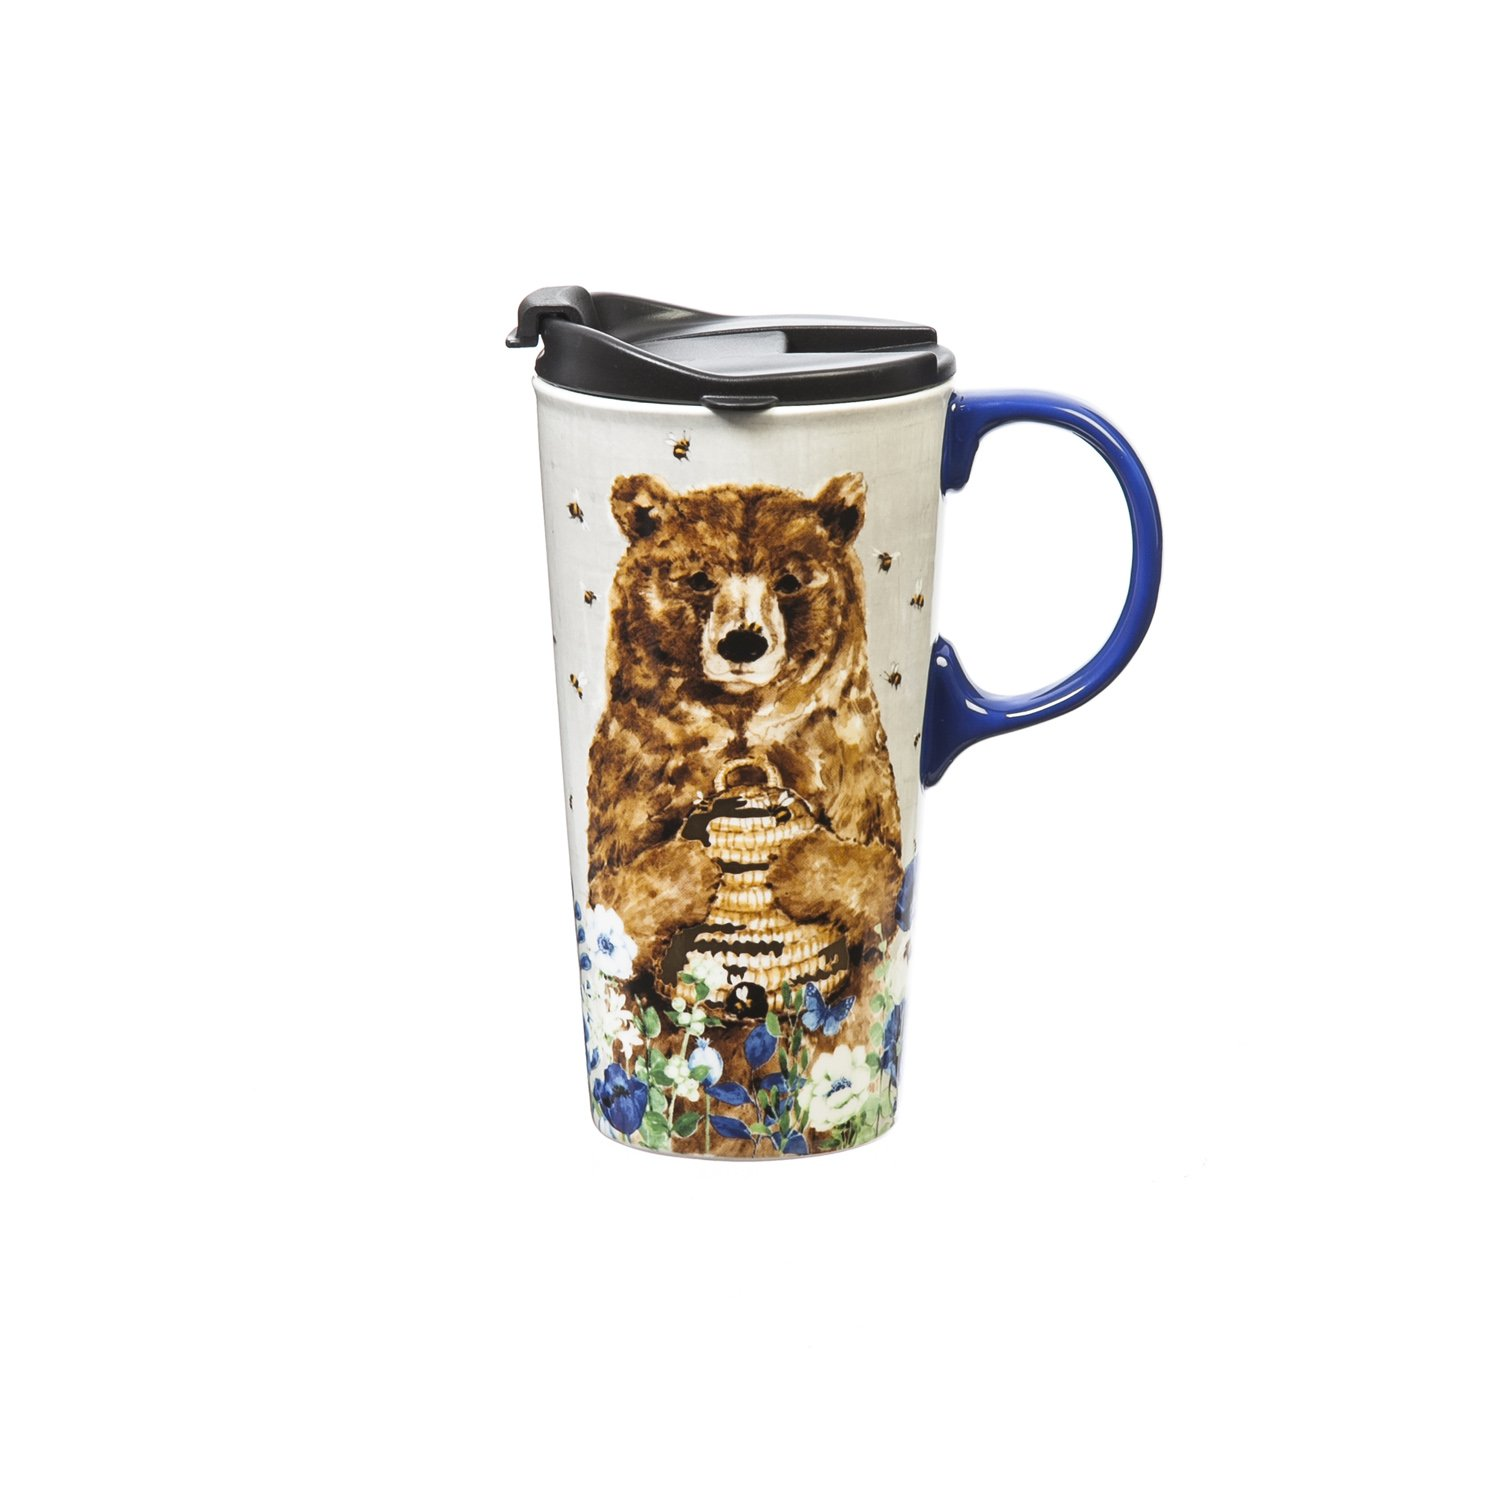 Cypress Home Flowers and Bear Metallic Ceramic Travel Coffee Mug with Gift Box, 17 ounces